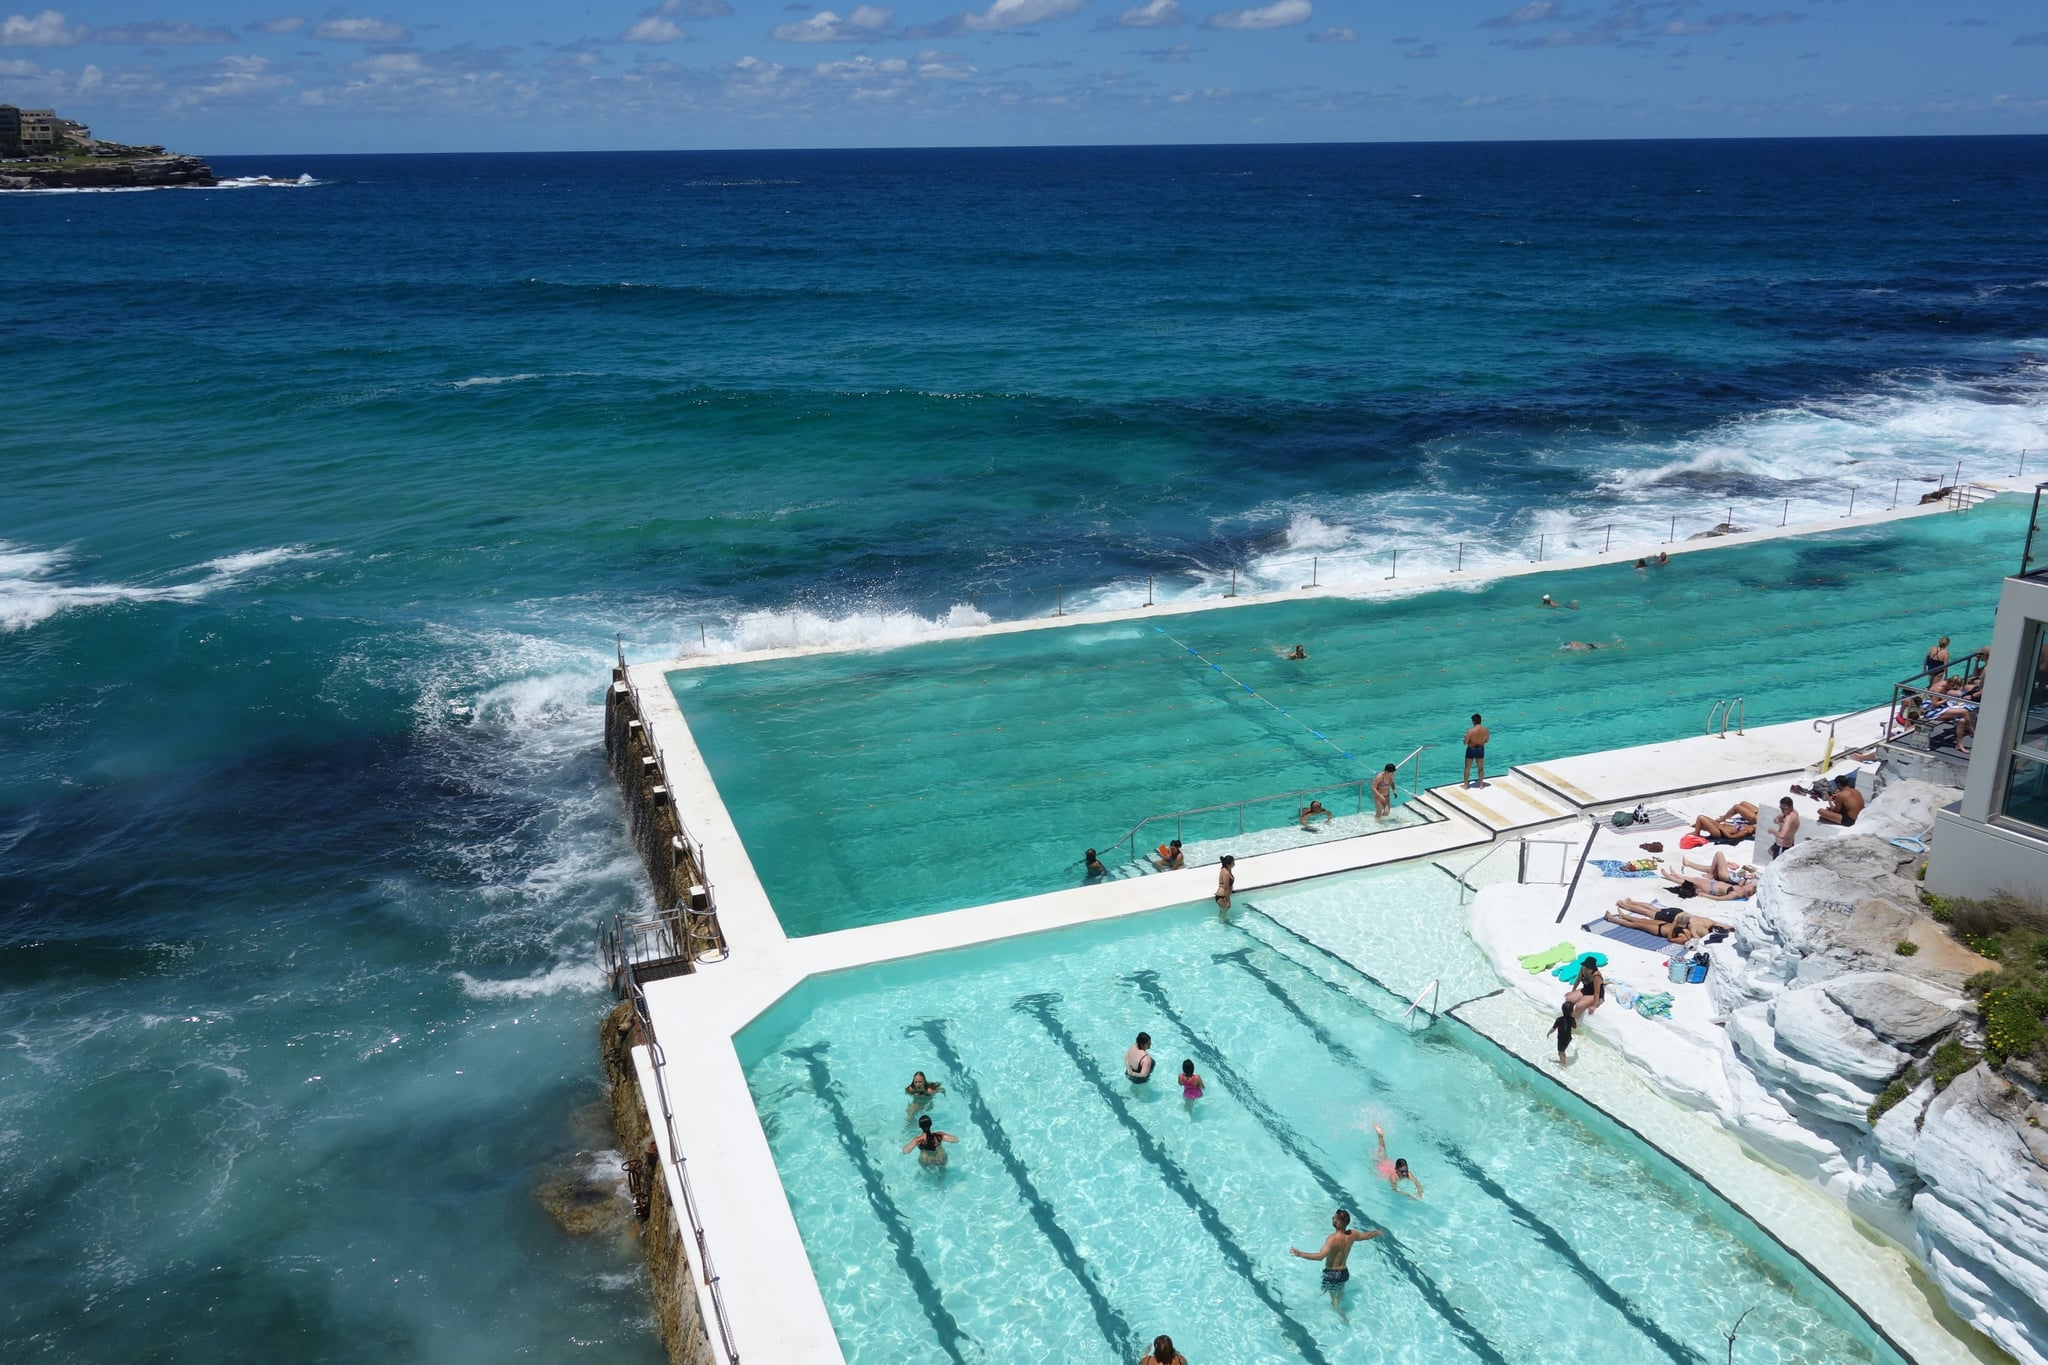 The Icebergs Pool At Sydneyu0027s Bondi Beach Emerges Out Of Dream. The Massive  Saltwater Pool And Adjacent Kiddie Pool Appear As You Walk North Along  Bondiu0027s ...